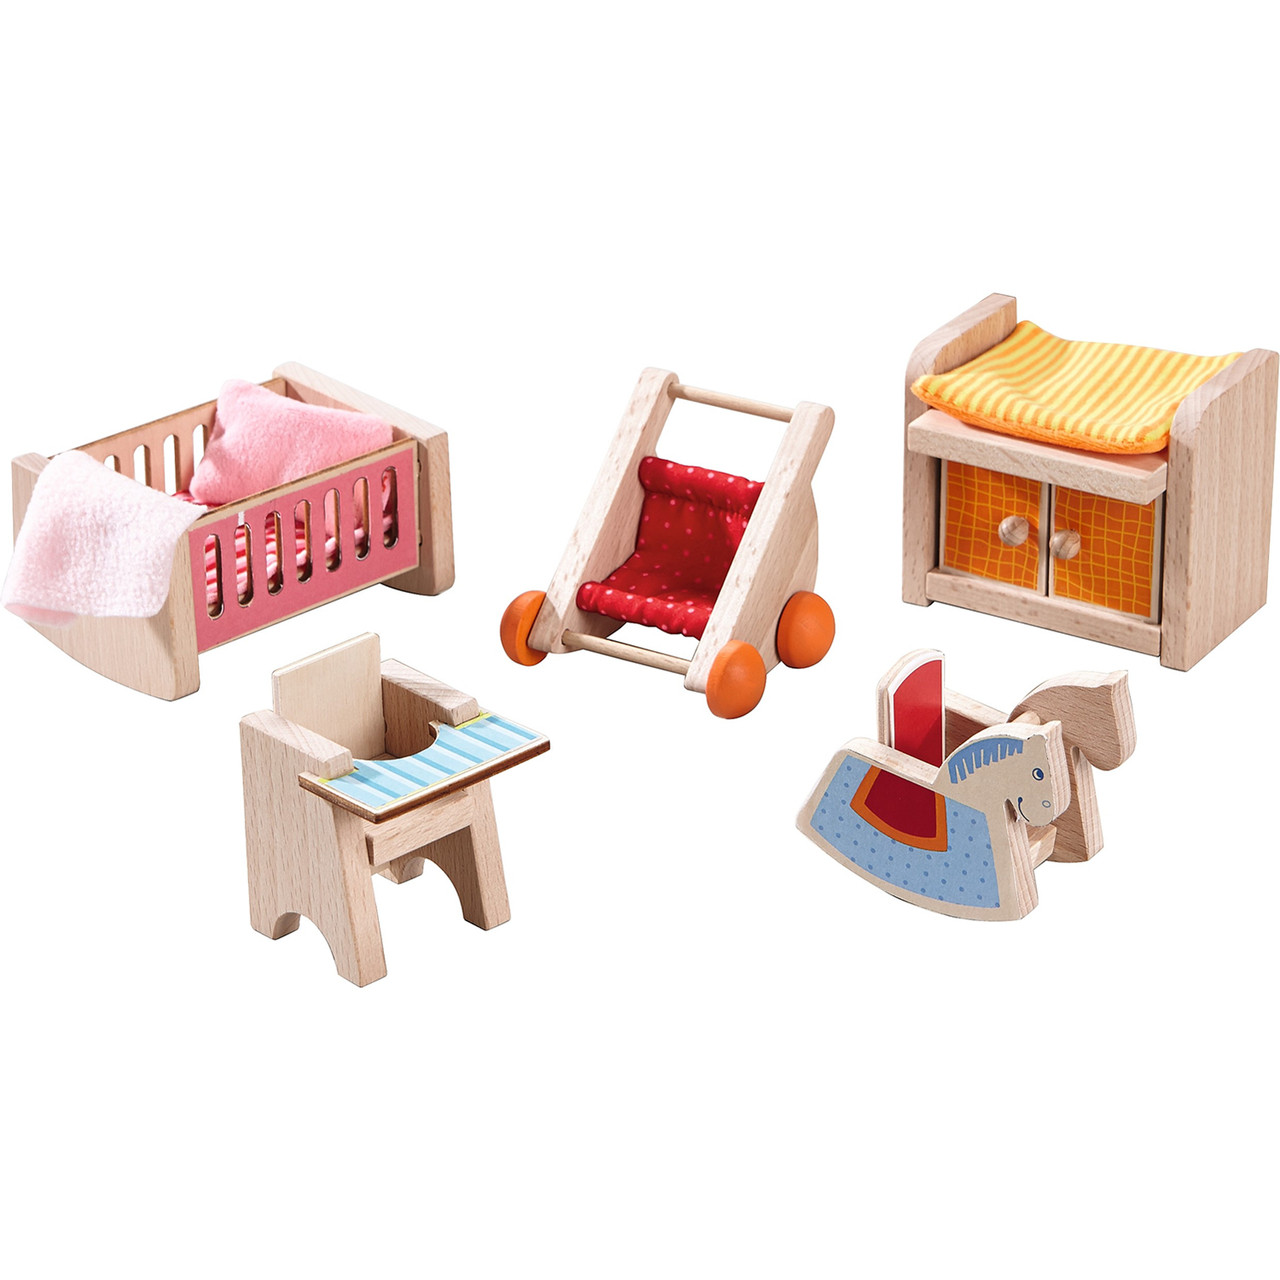 Babies Room Accessories Dollhouse Furniture Baby S Room